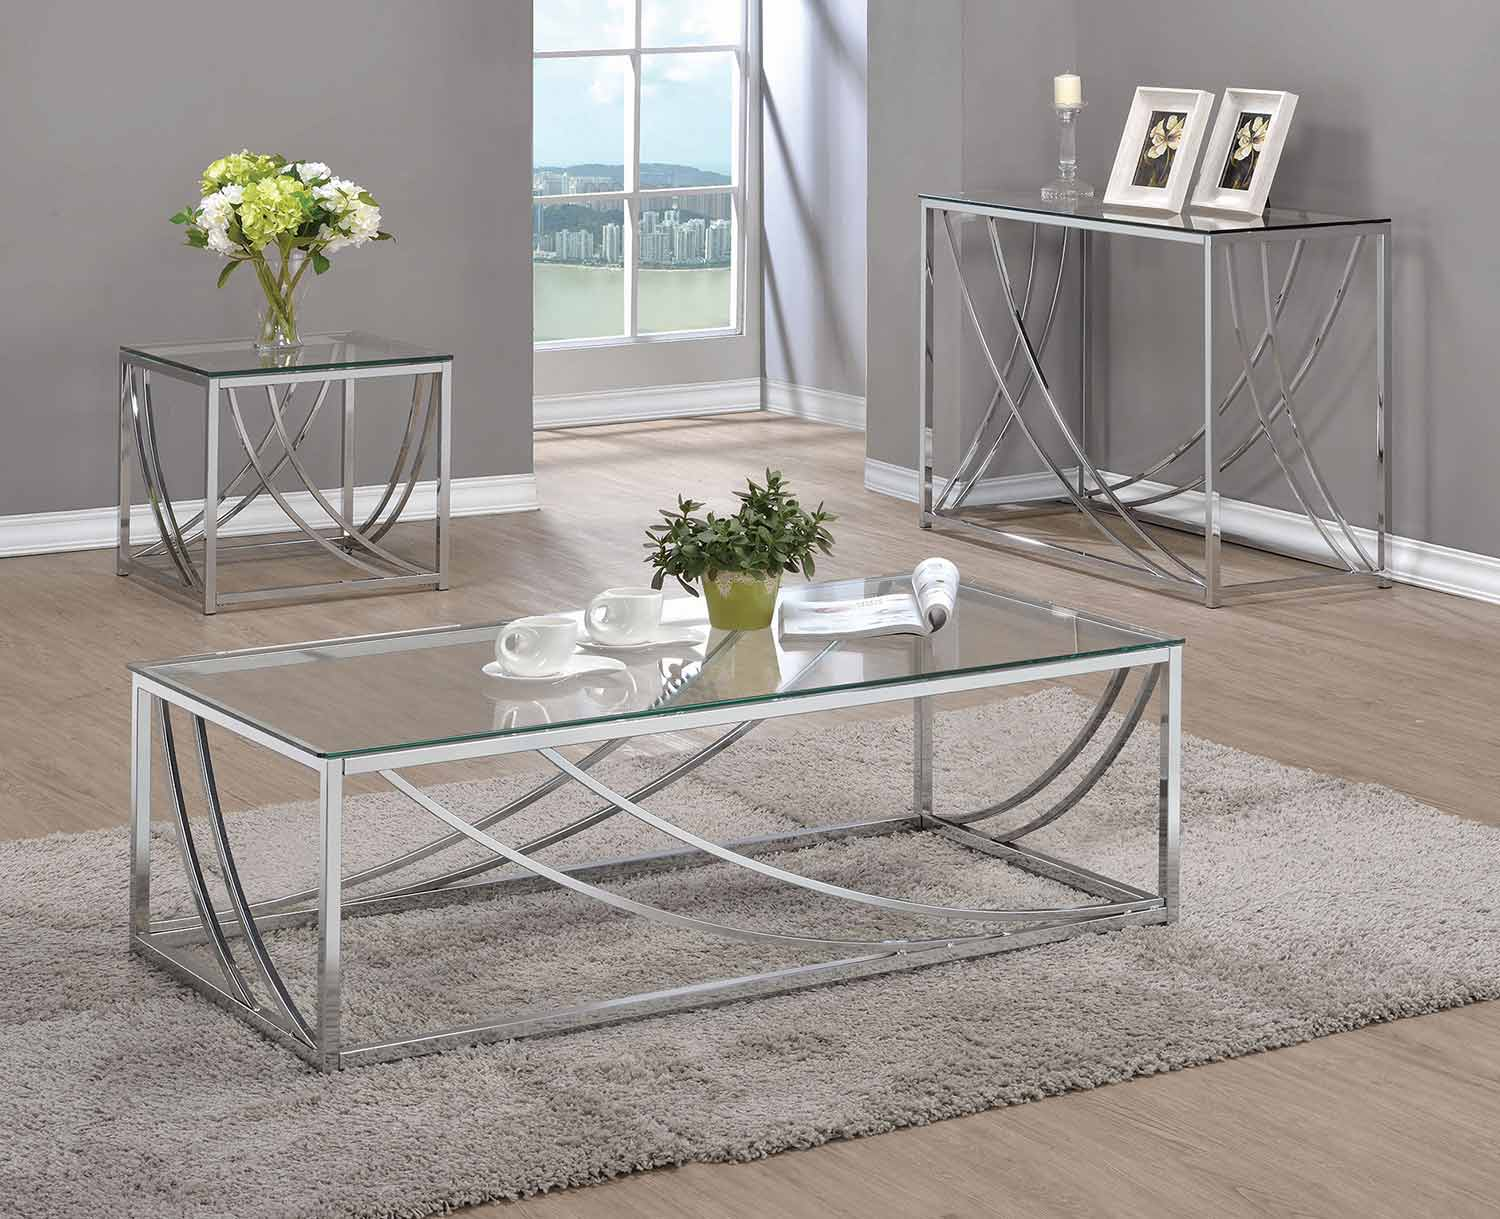 Coaster 720498 Occasional/Coffee Table Set - Chrome